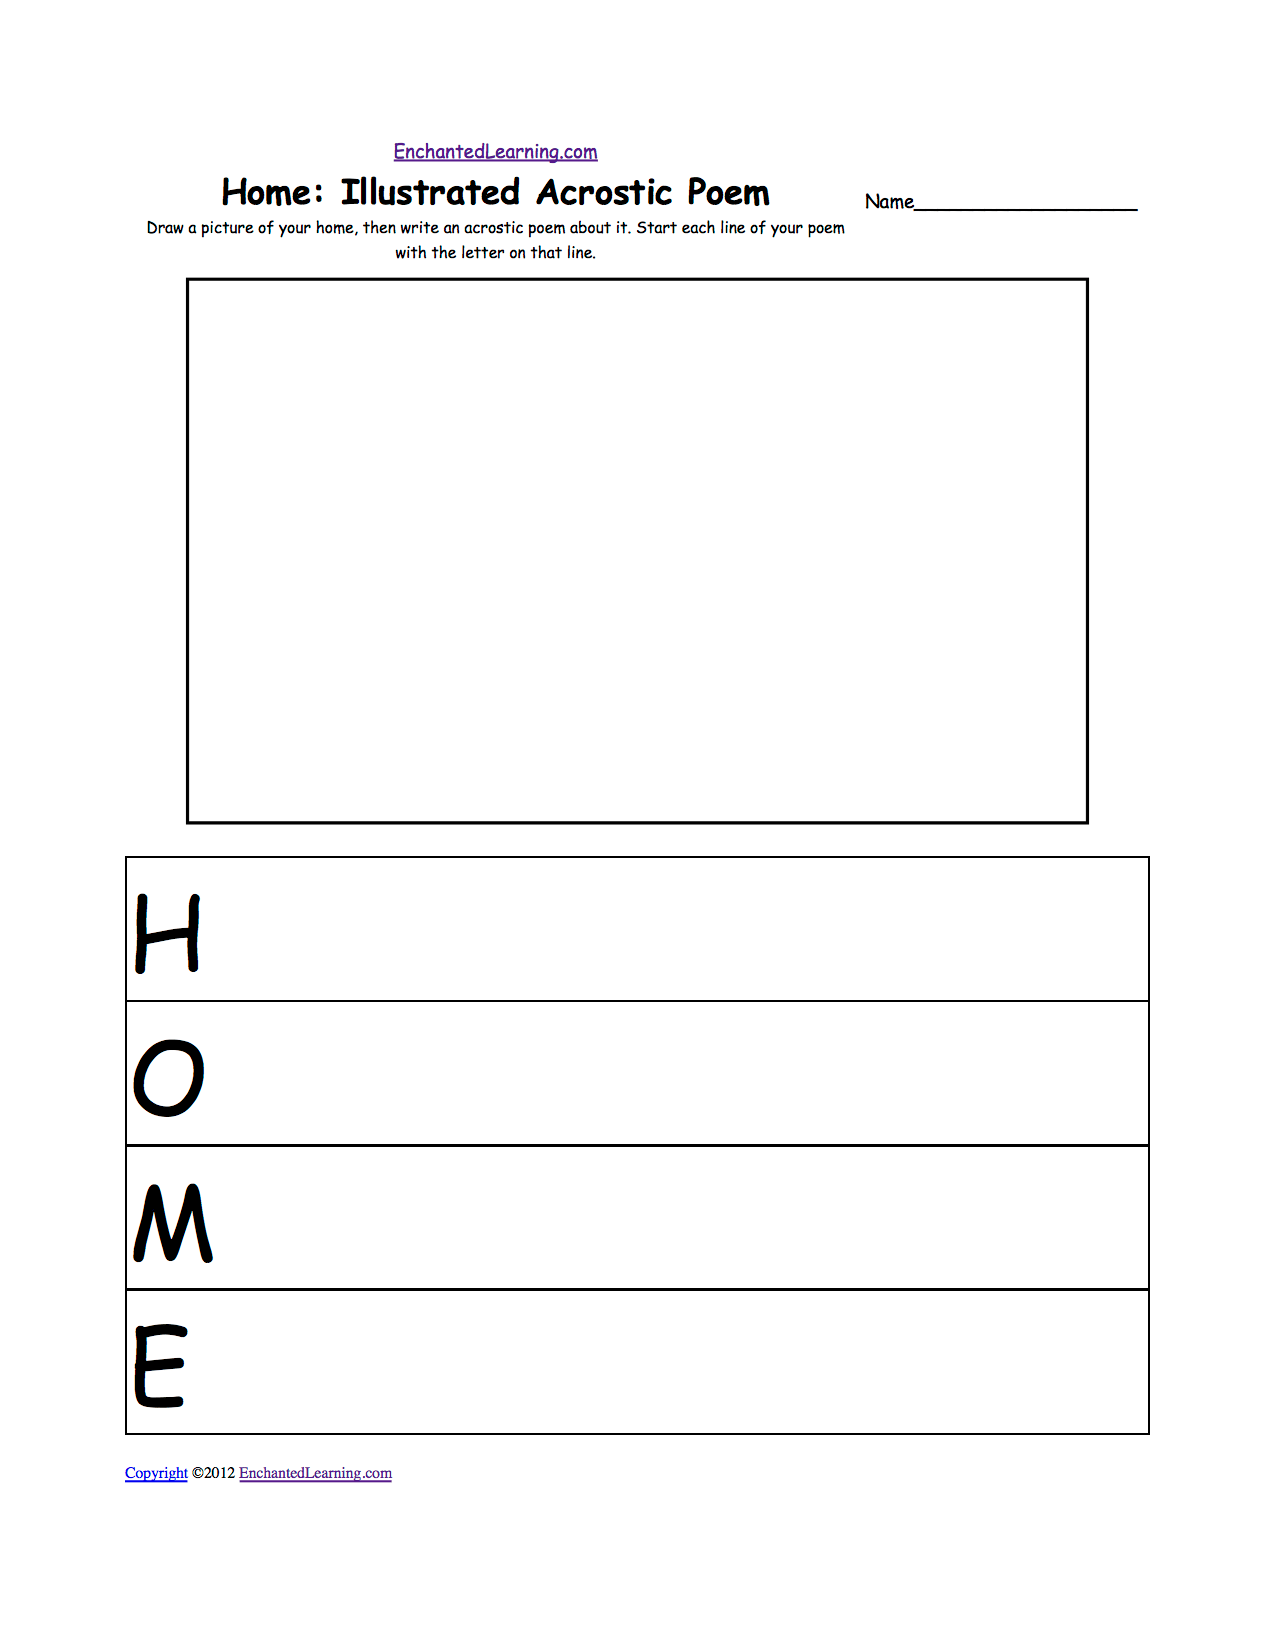 Home Illustrated Acrostic Poem